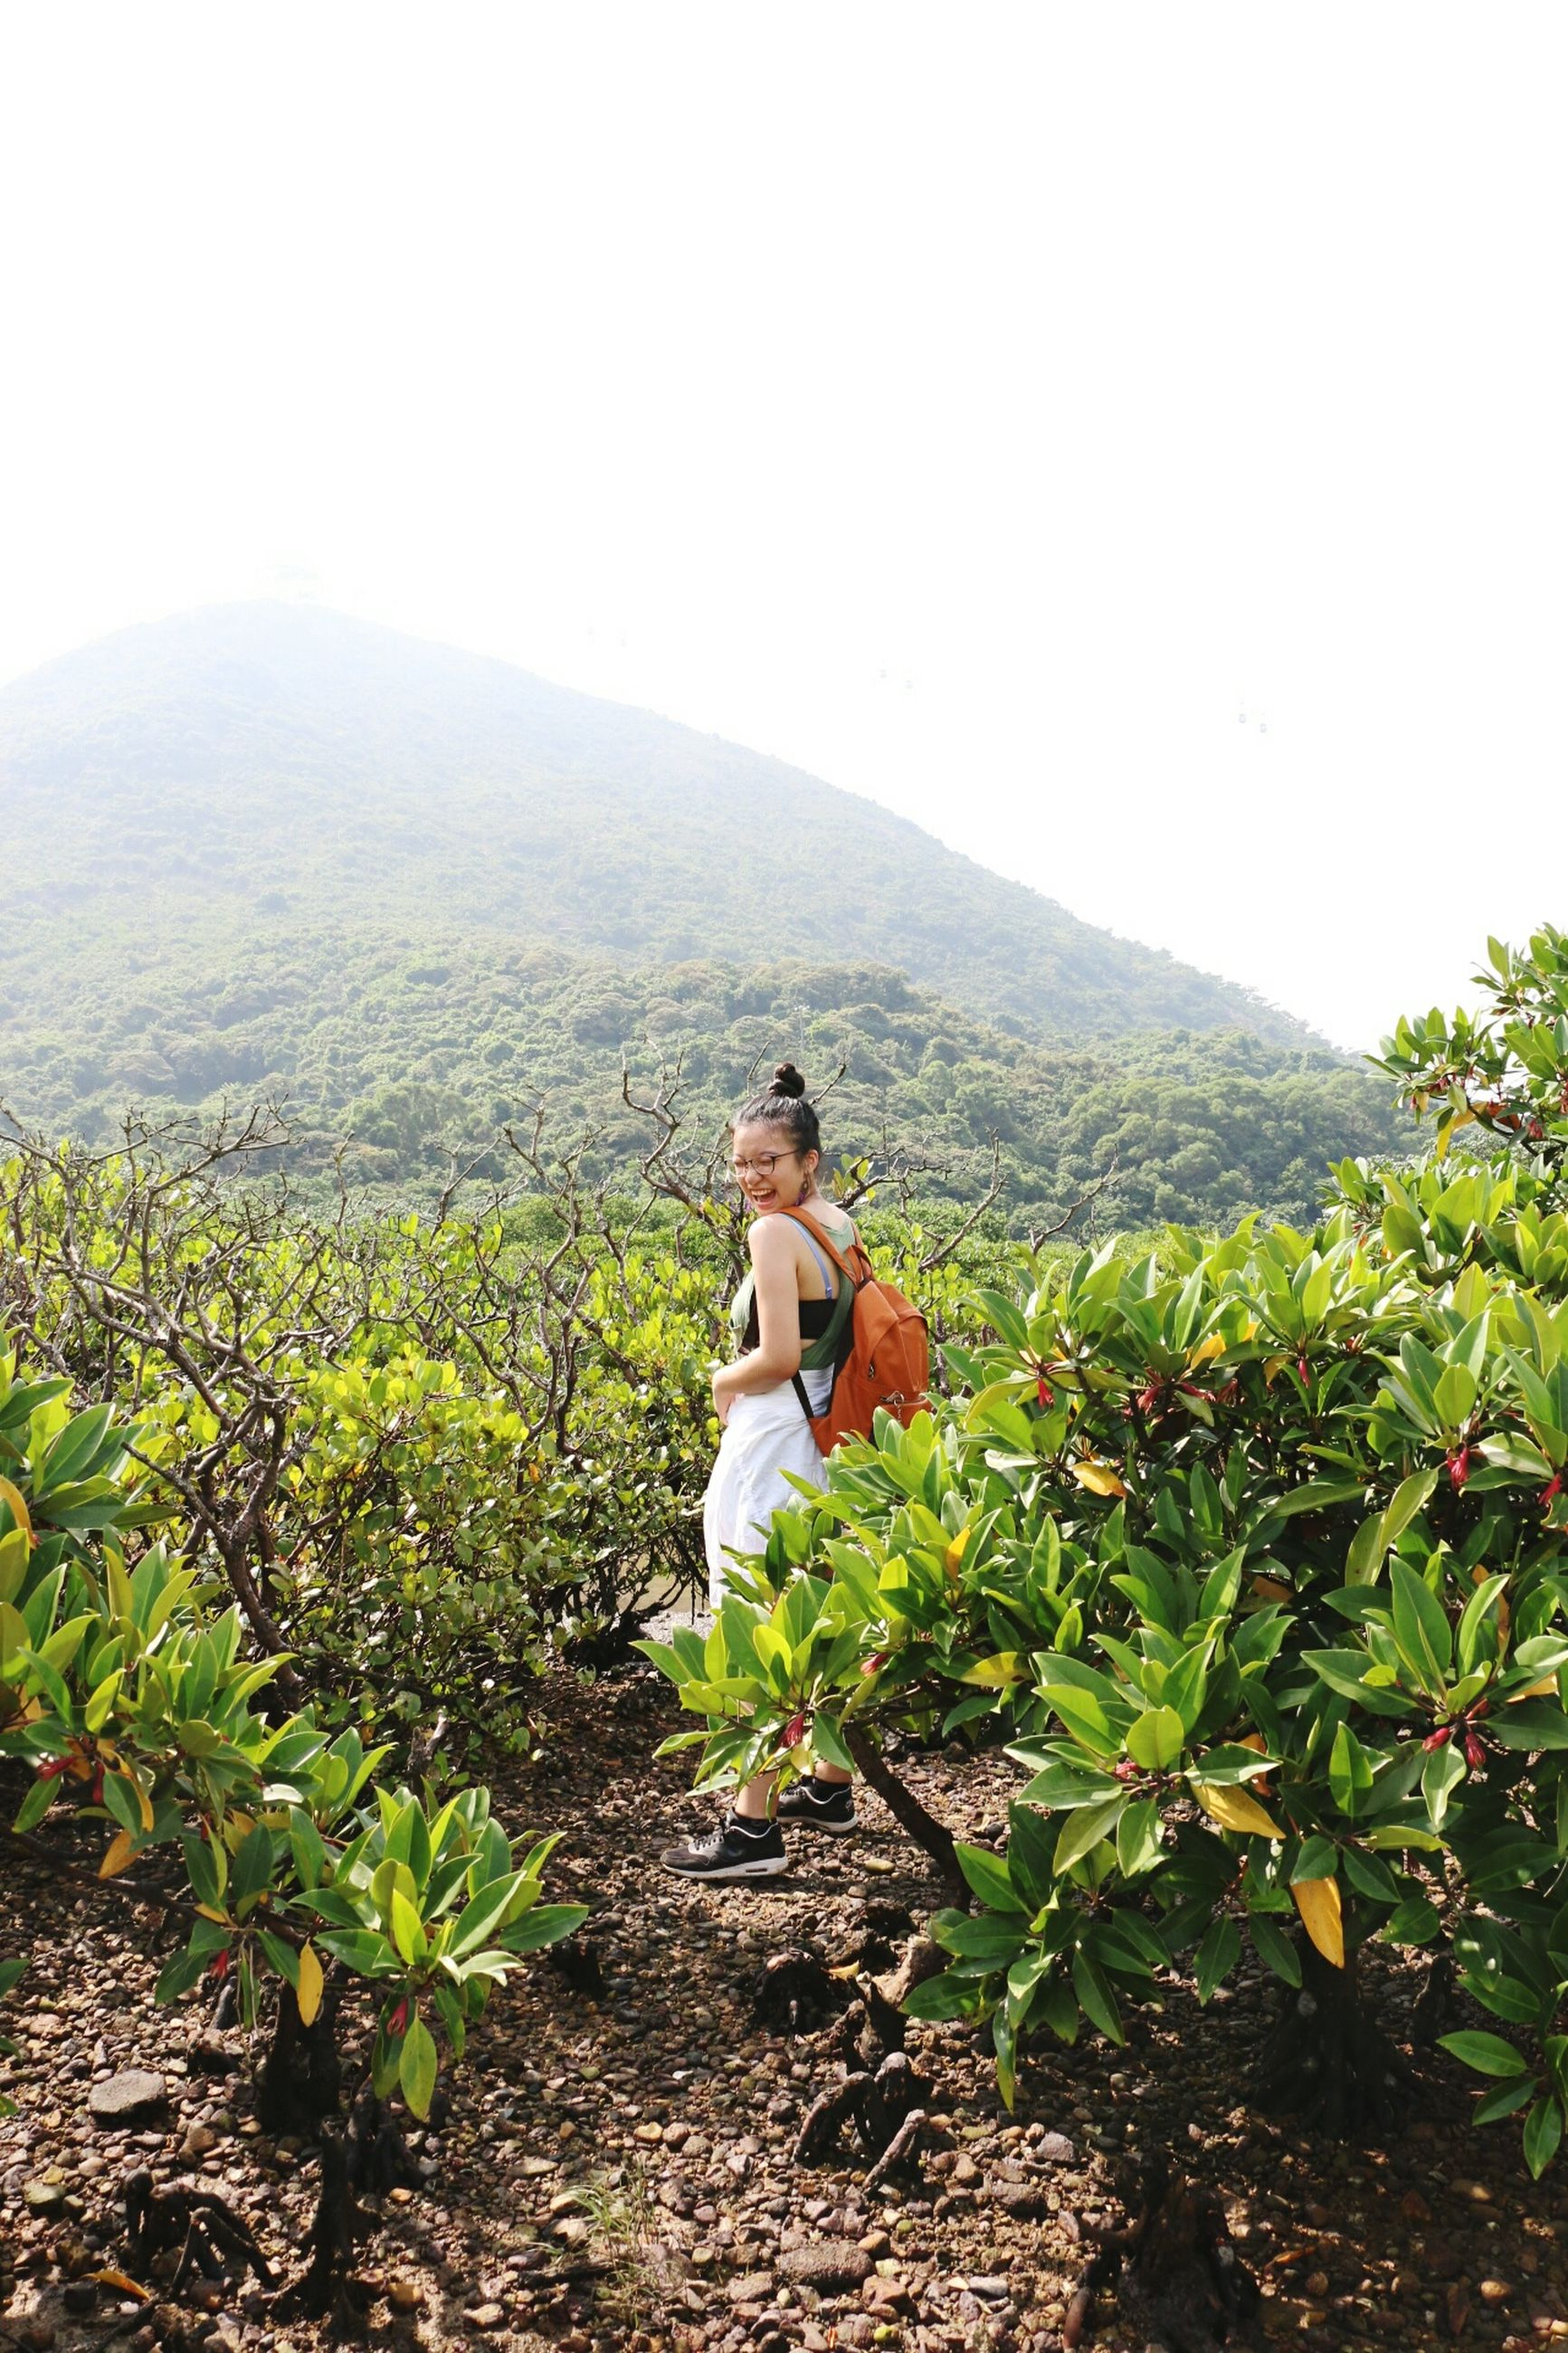 leisure activity, lifestyles, mountain, rear view, men, plant, standing, flower, person, water, beauty in nature, tranquil scene, tranquility, growth, scenics, mountain range, casual clothing, relaxation, vacations, nature, day, weekend activities, non-urban scene, carefree, getting away from it all, sea, solitude, outdoors